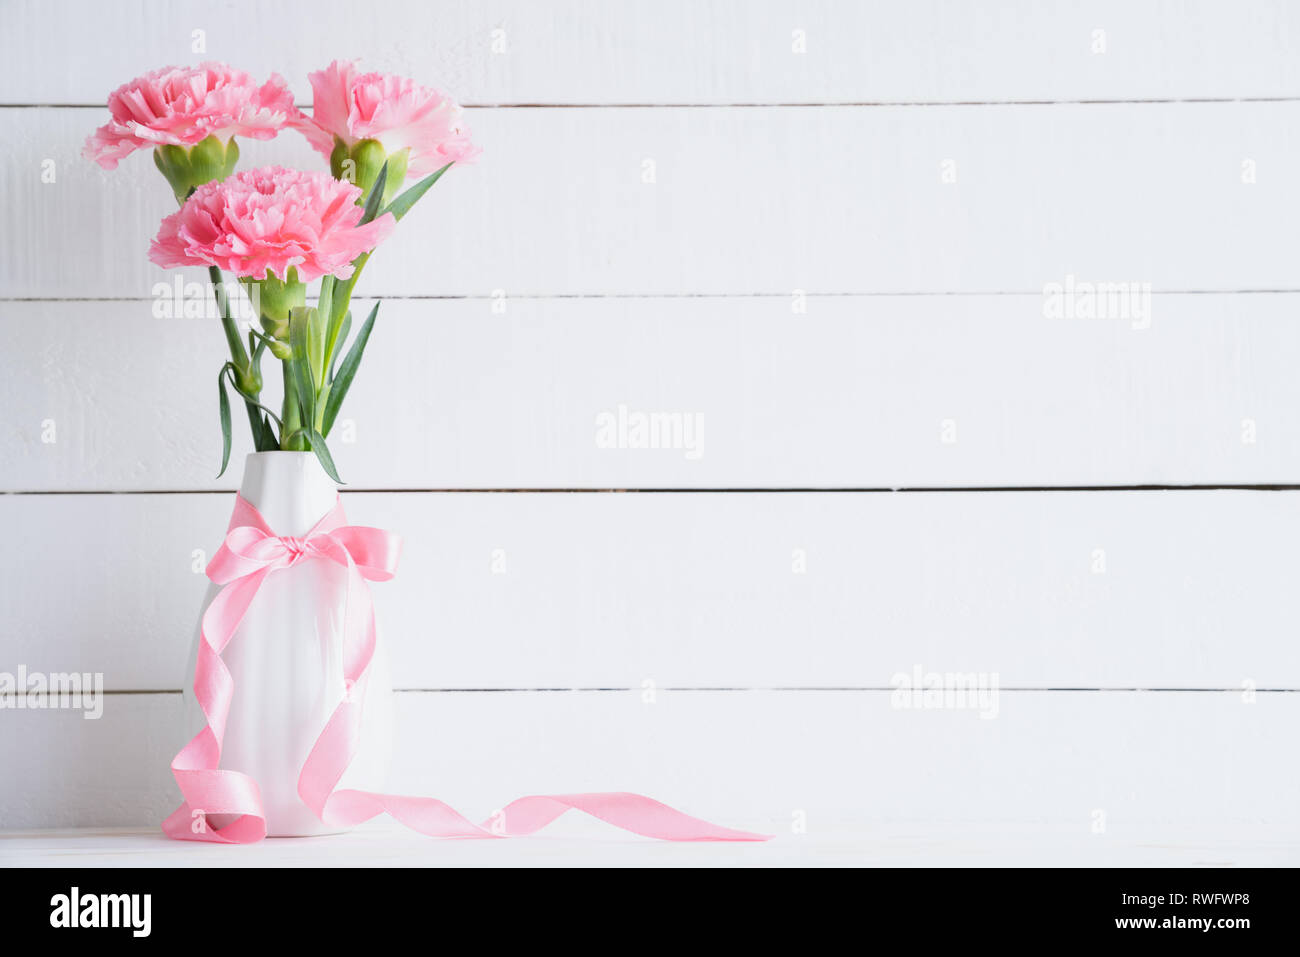 Valentines day and love concept. Pink carnation flower in vase with Wooden letters forming word LOVE written on white background. - Stock Image